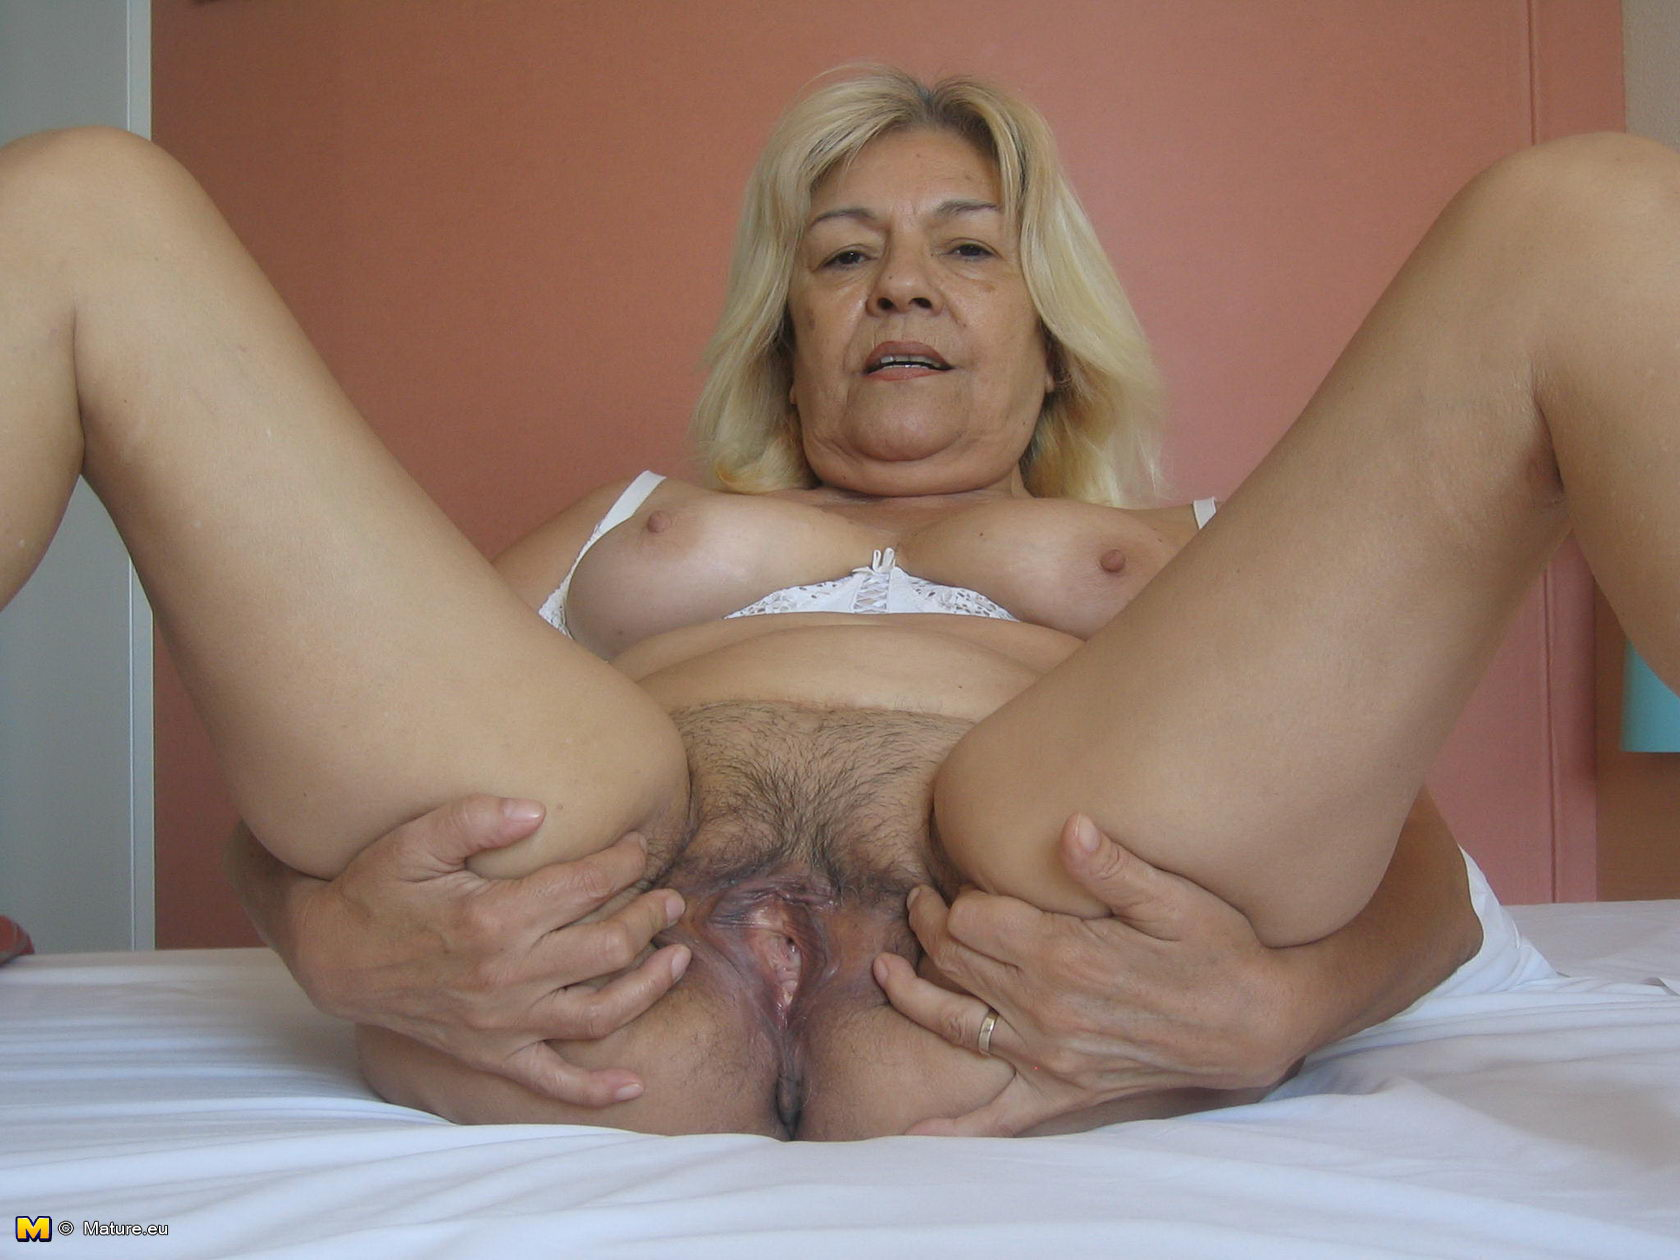 70 Year Old Granny Porn 70 year old women pussy porno chaude   free hot nude porn